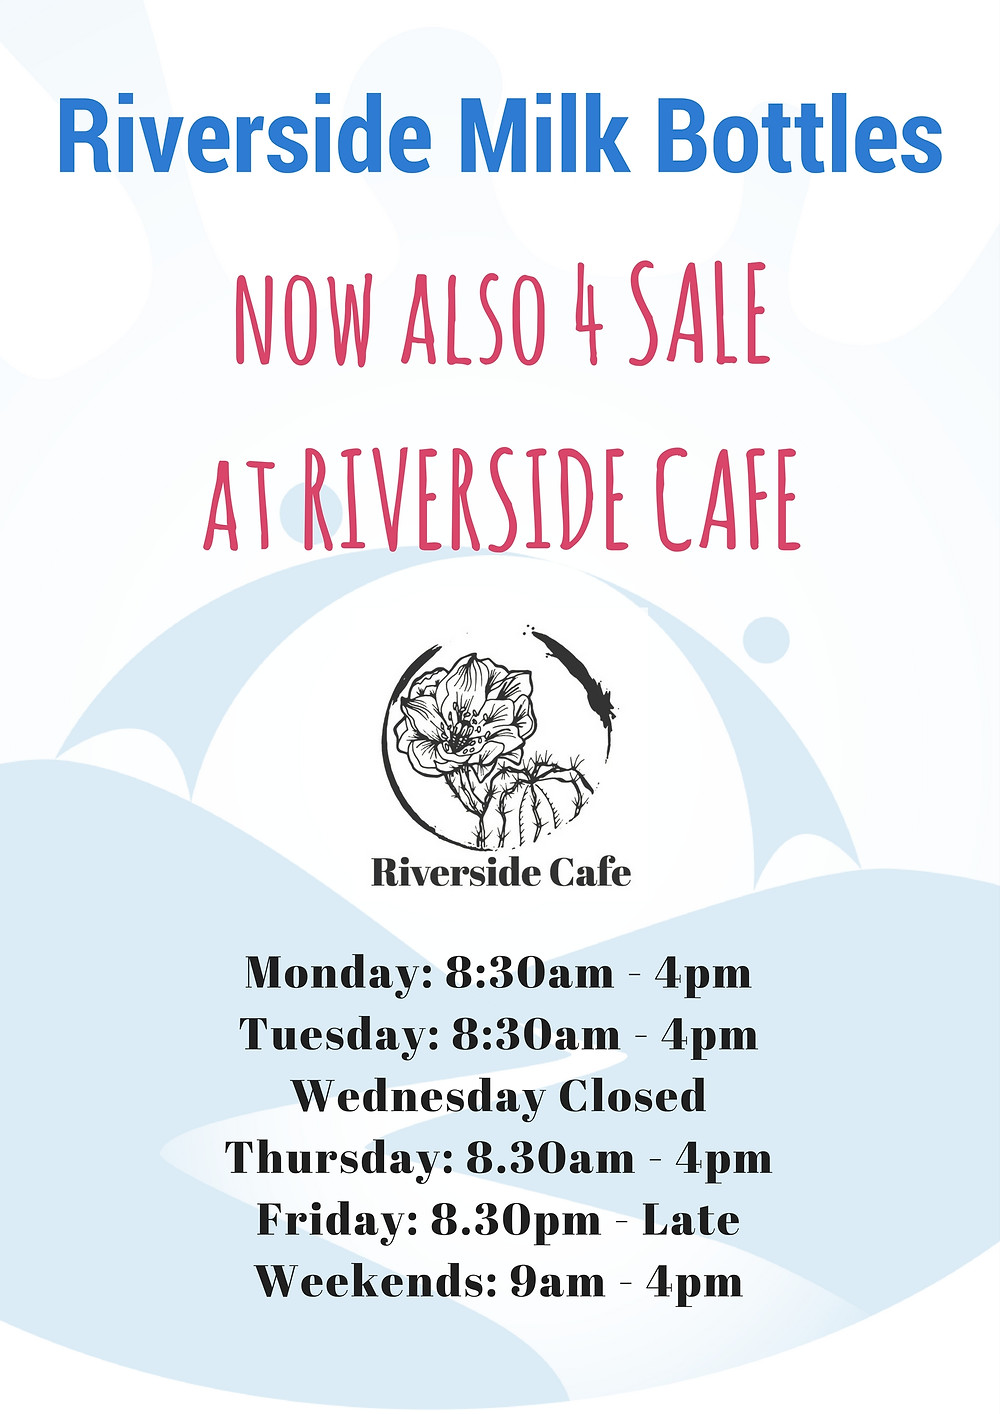 Milk Glass Bottles are now also for Sale at Riverside Cafe